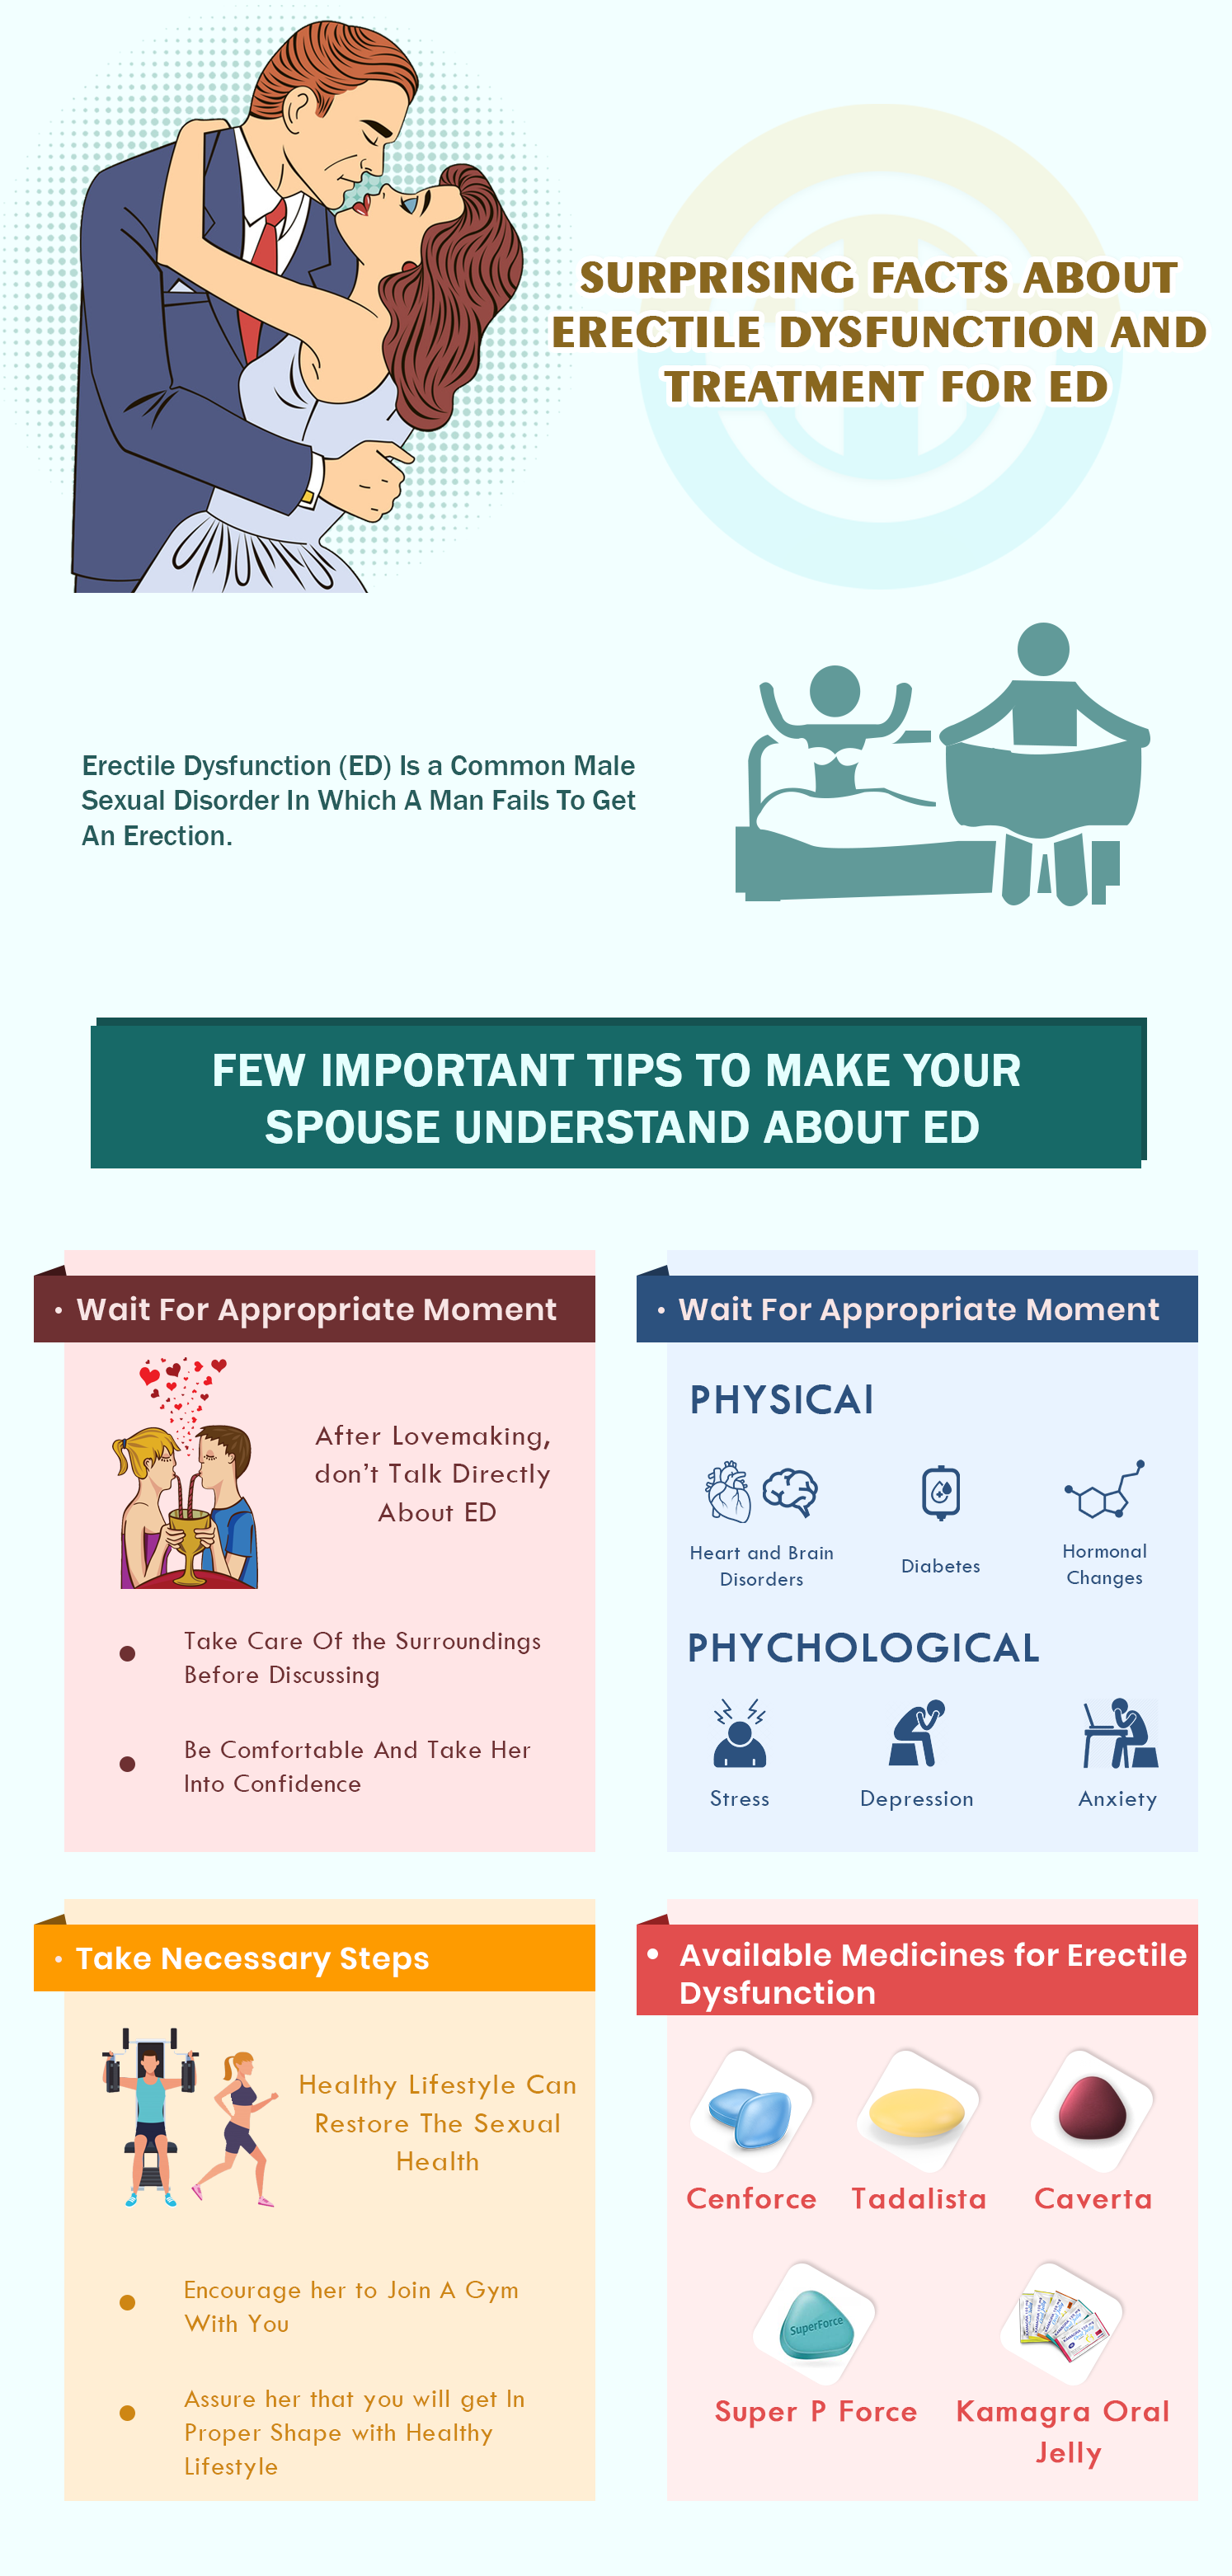 Surprising Facts About Erectile Dysfunction and Treatment for ED